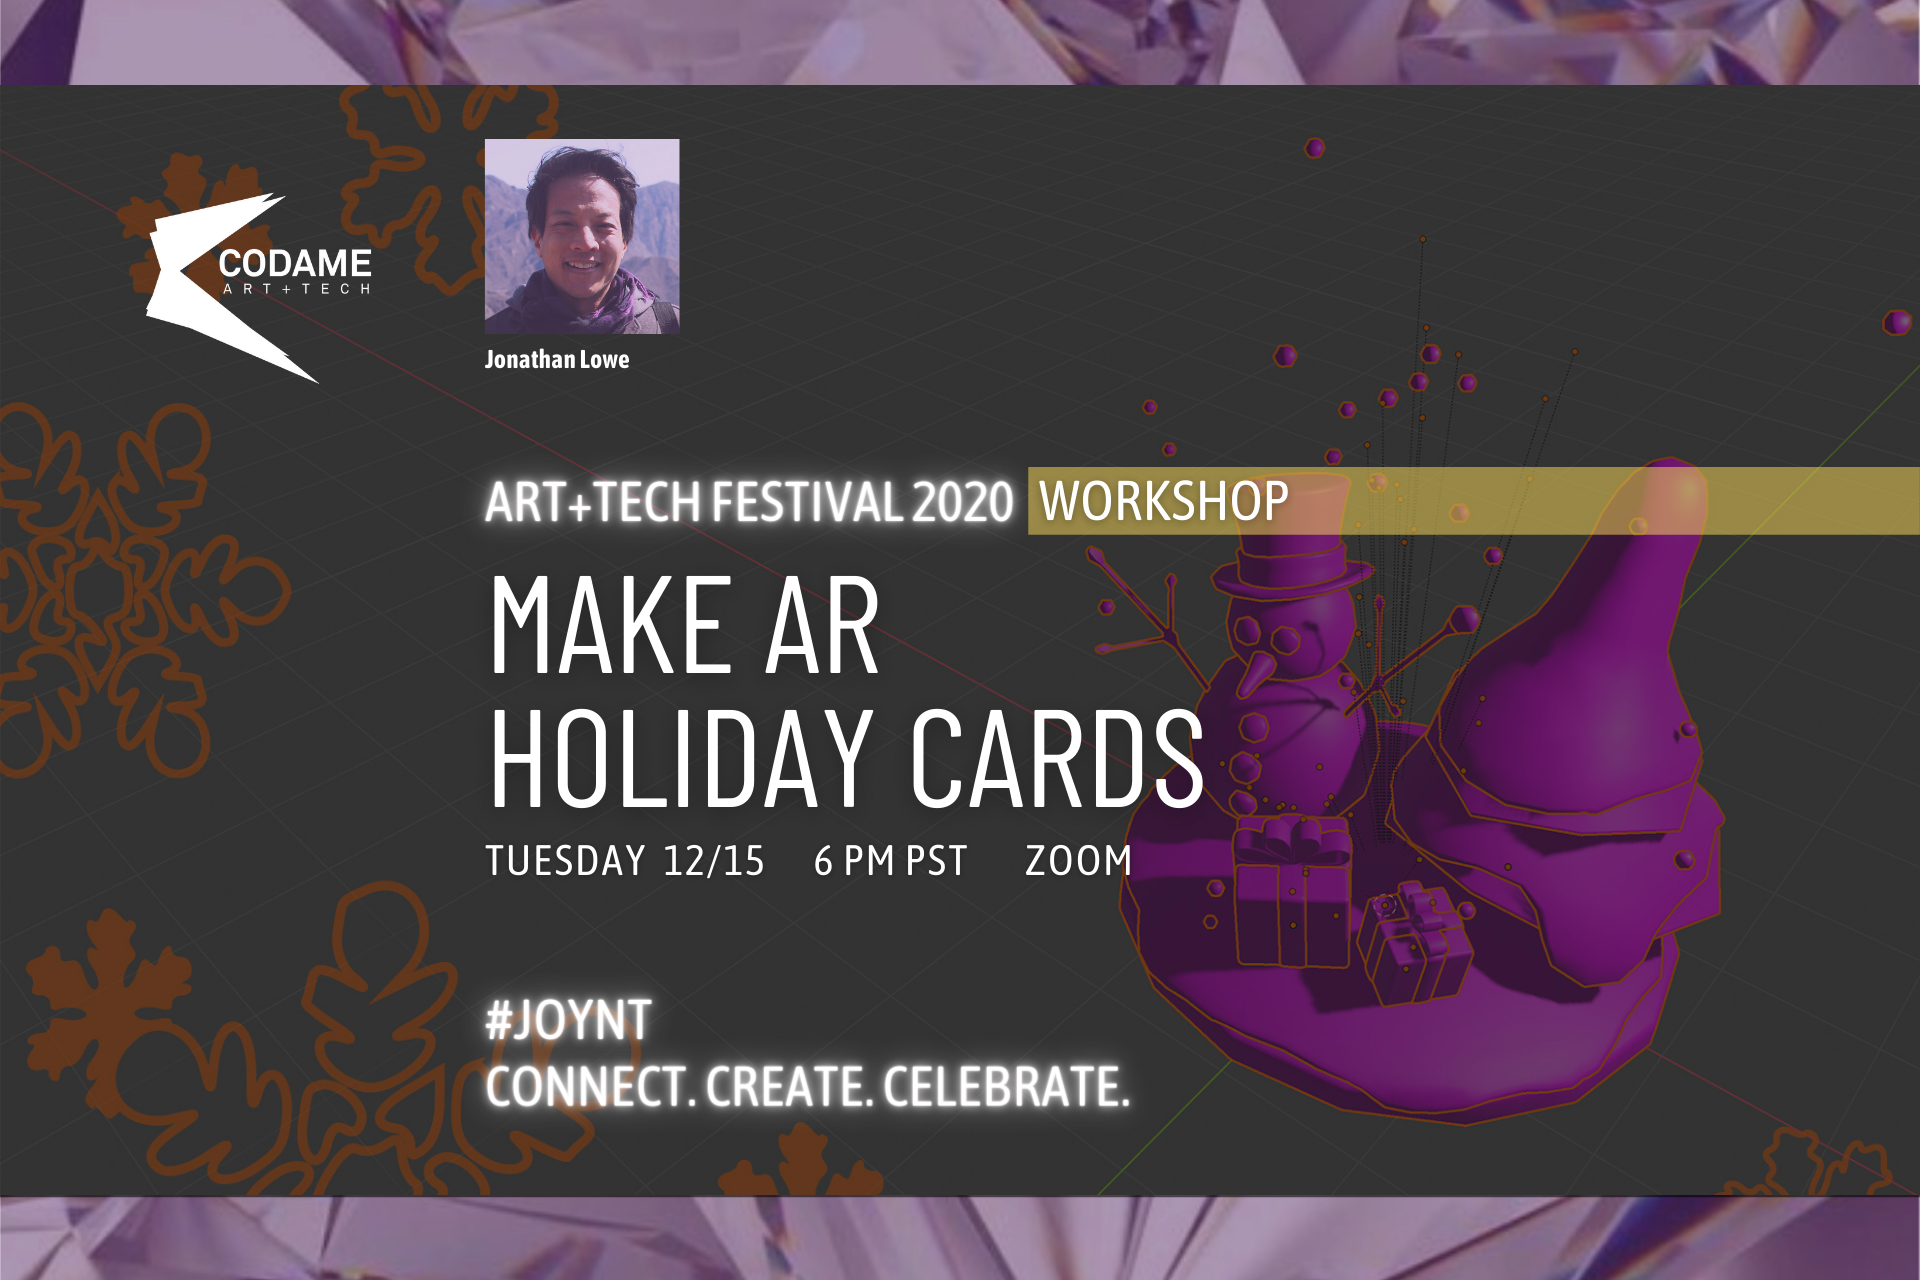 Make AR Holiday Cards